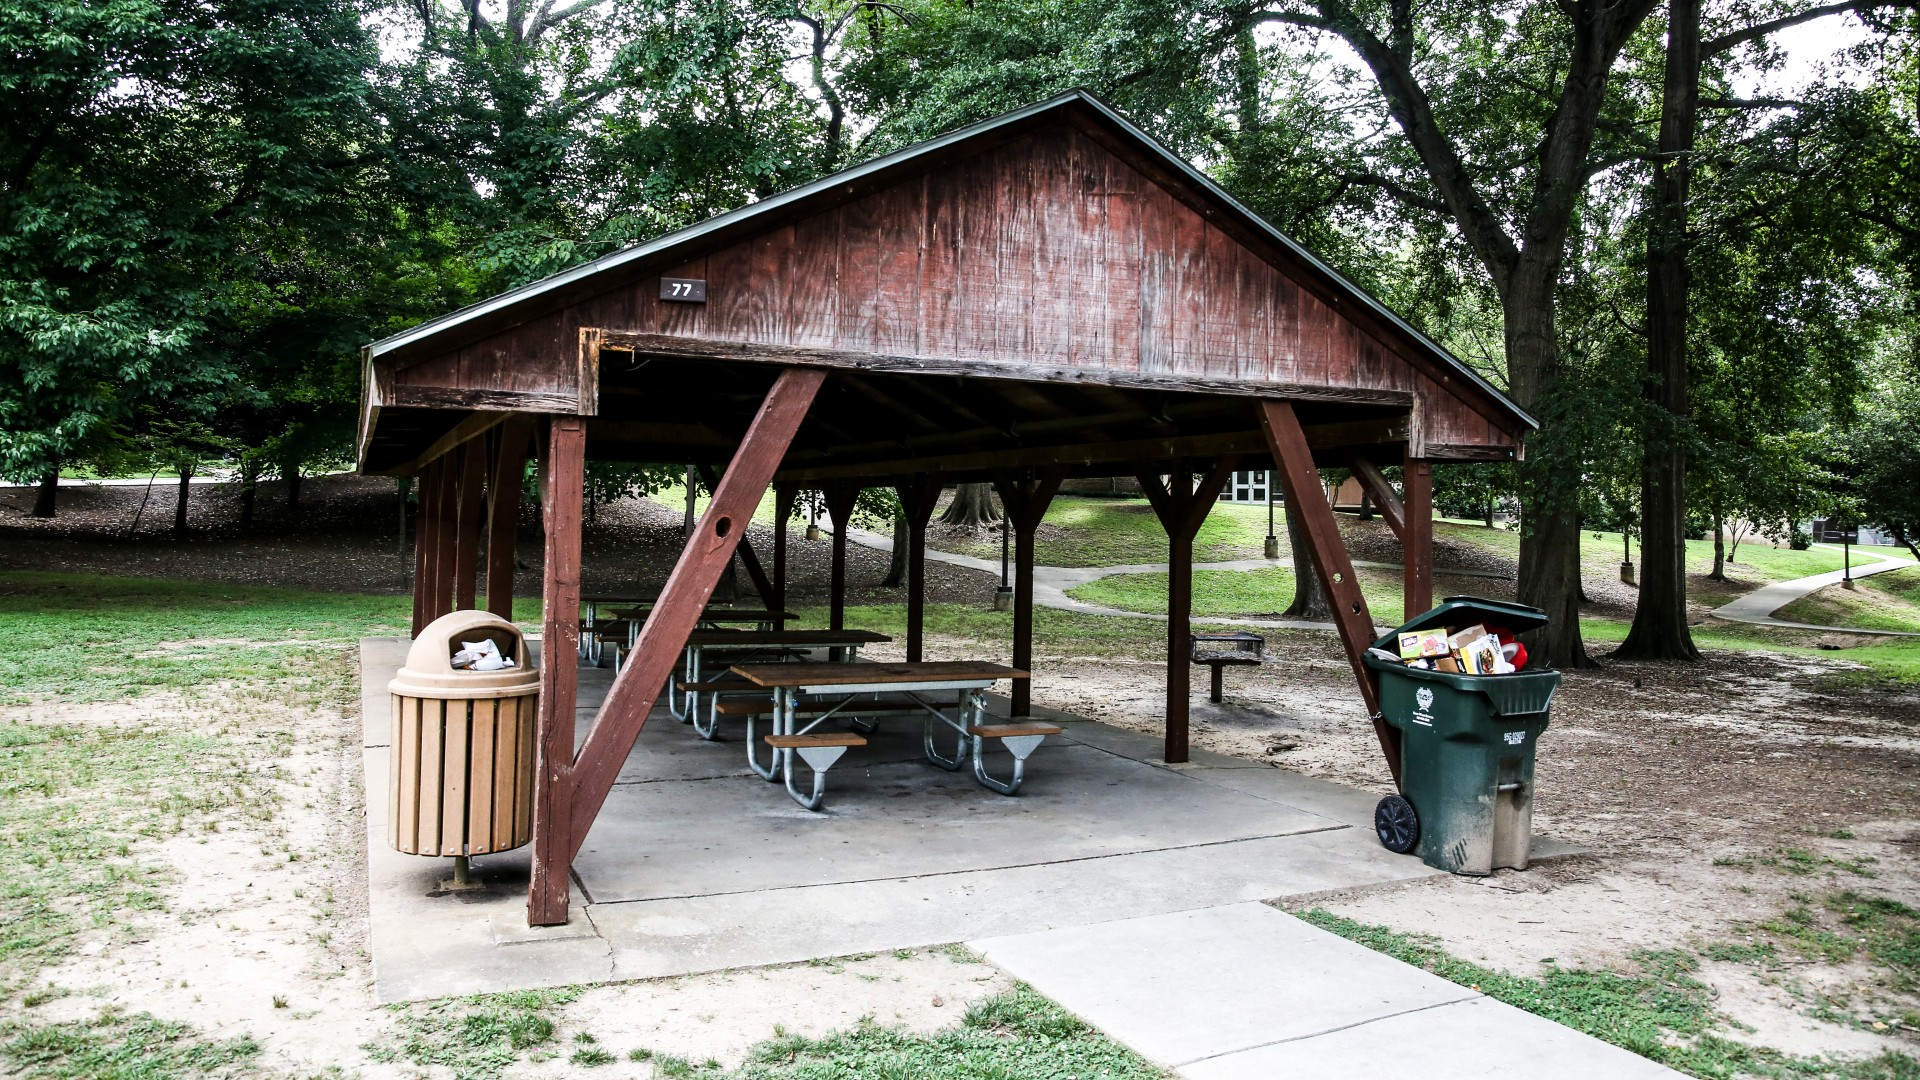 A second outdoor picnic shelter with six tables